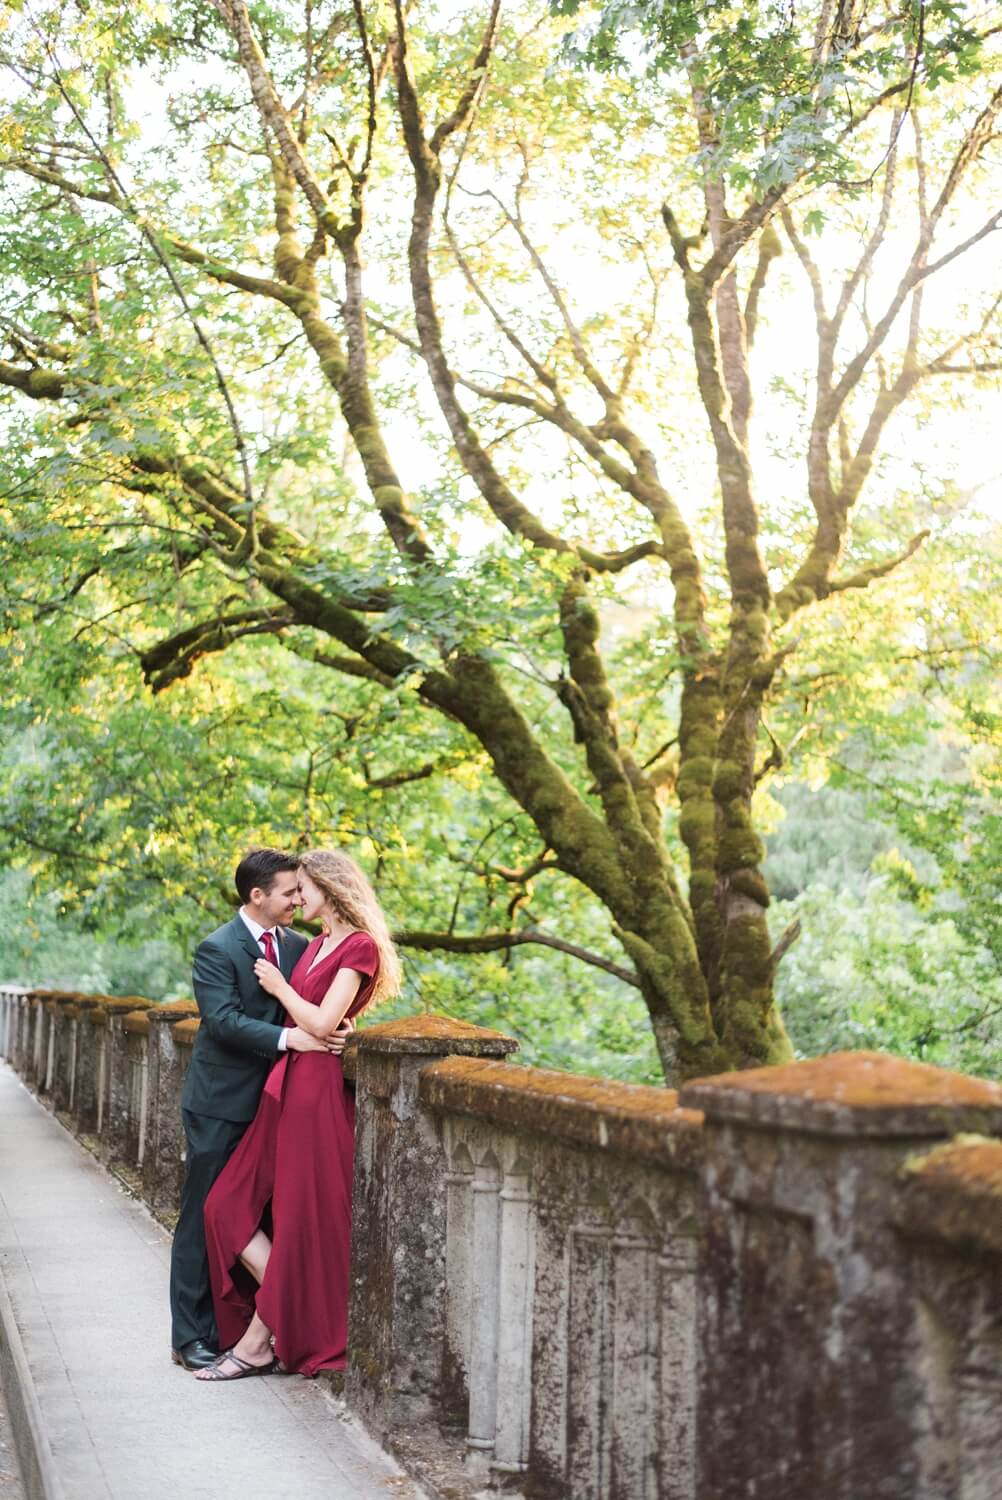 latourel-waterfall-engagement-photos-columbia-river-gorge-portland-oregon-260_cr.jpg